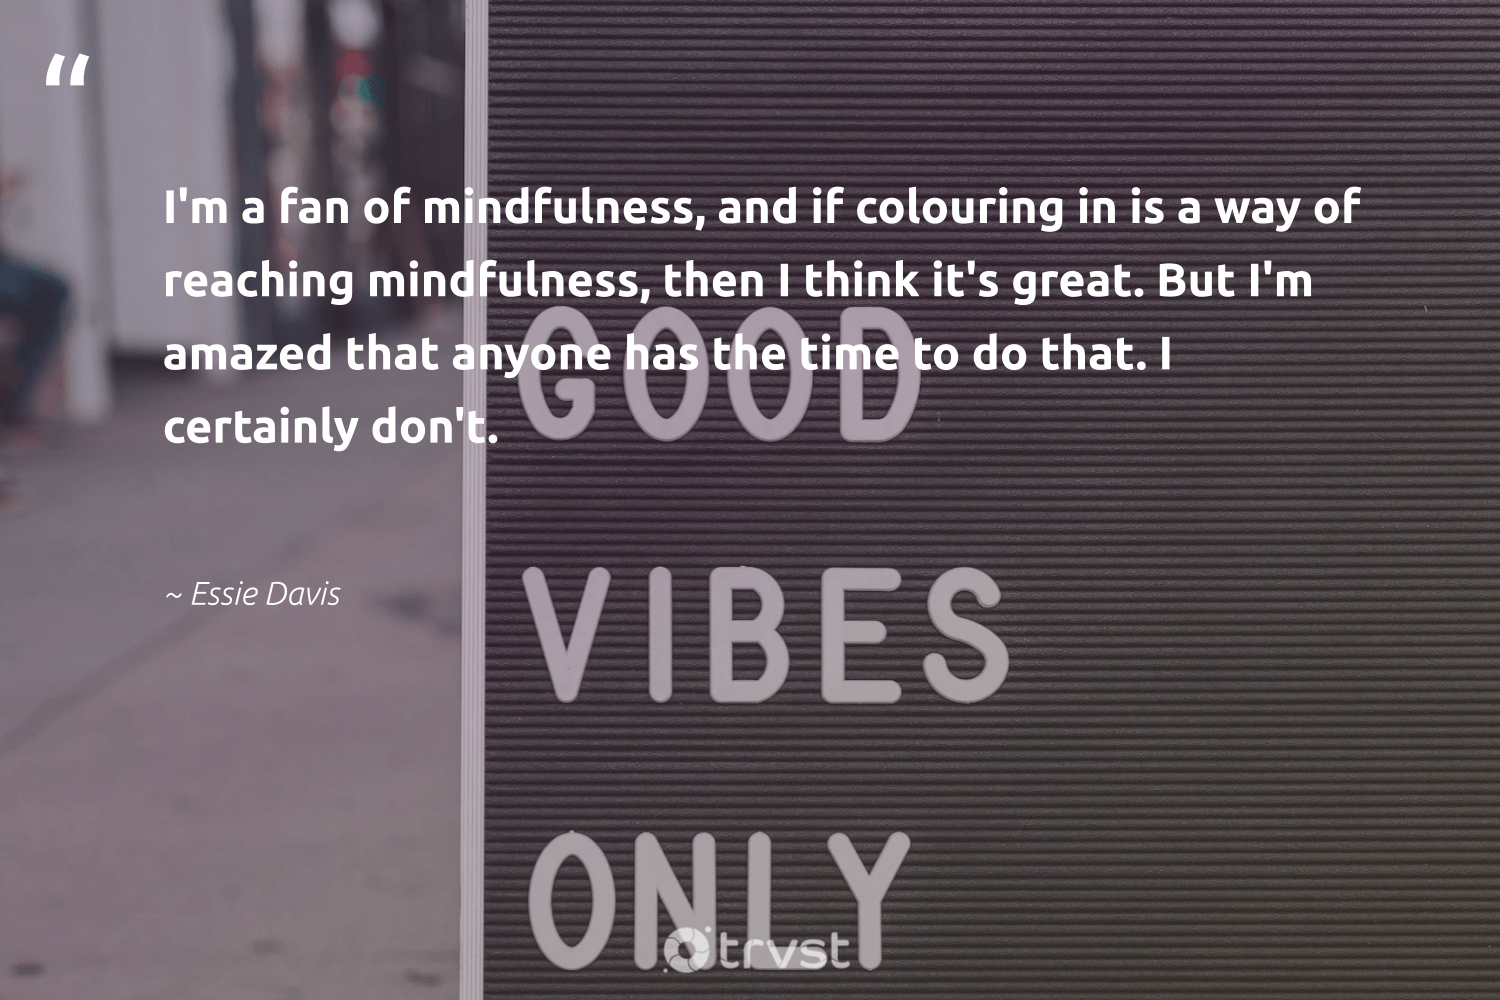 """""""I'm a fan of mindfulness, and if colouring in is a way of reaching mindfulness, then I think it's great. But I'm amazed that anyone has the time to do that. I certainly don't.""""  - Essie Davis #trvst #quotes #mindfulness #mindset #mentalheatlh #begreat #collectiveaction #meditation #wellness #health #socialimpact #goals"""